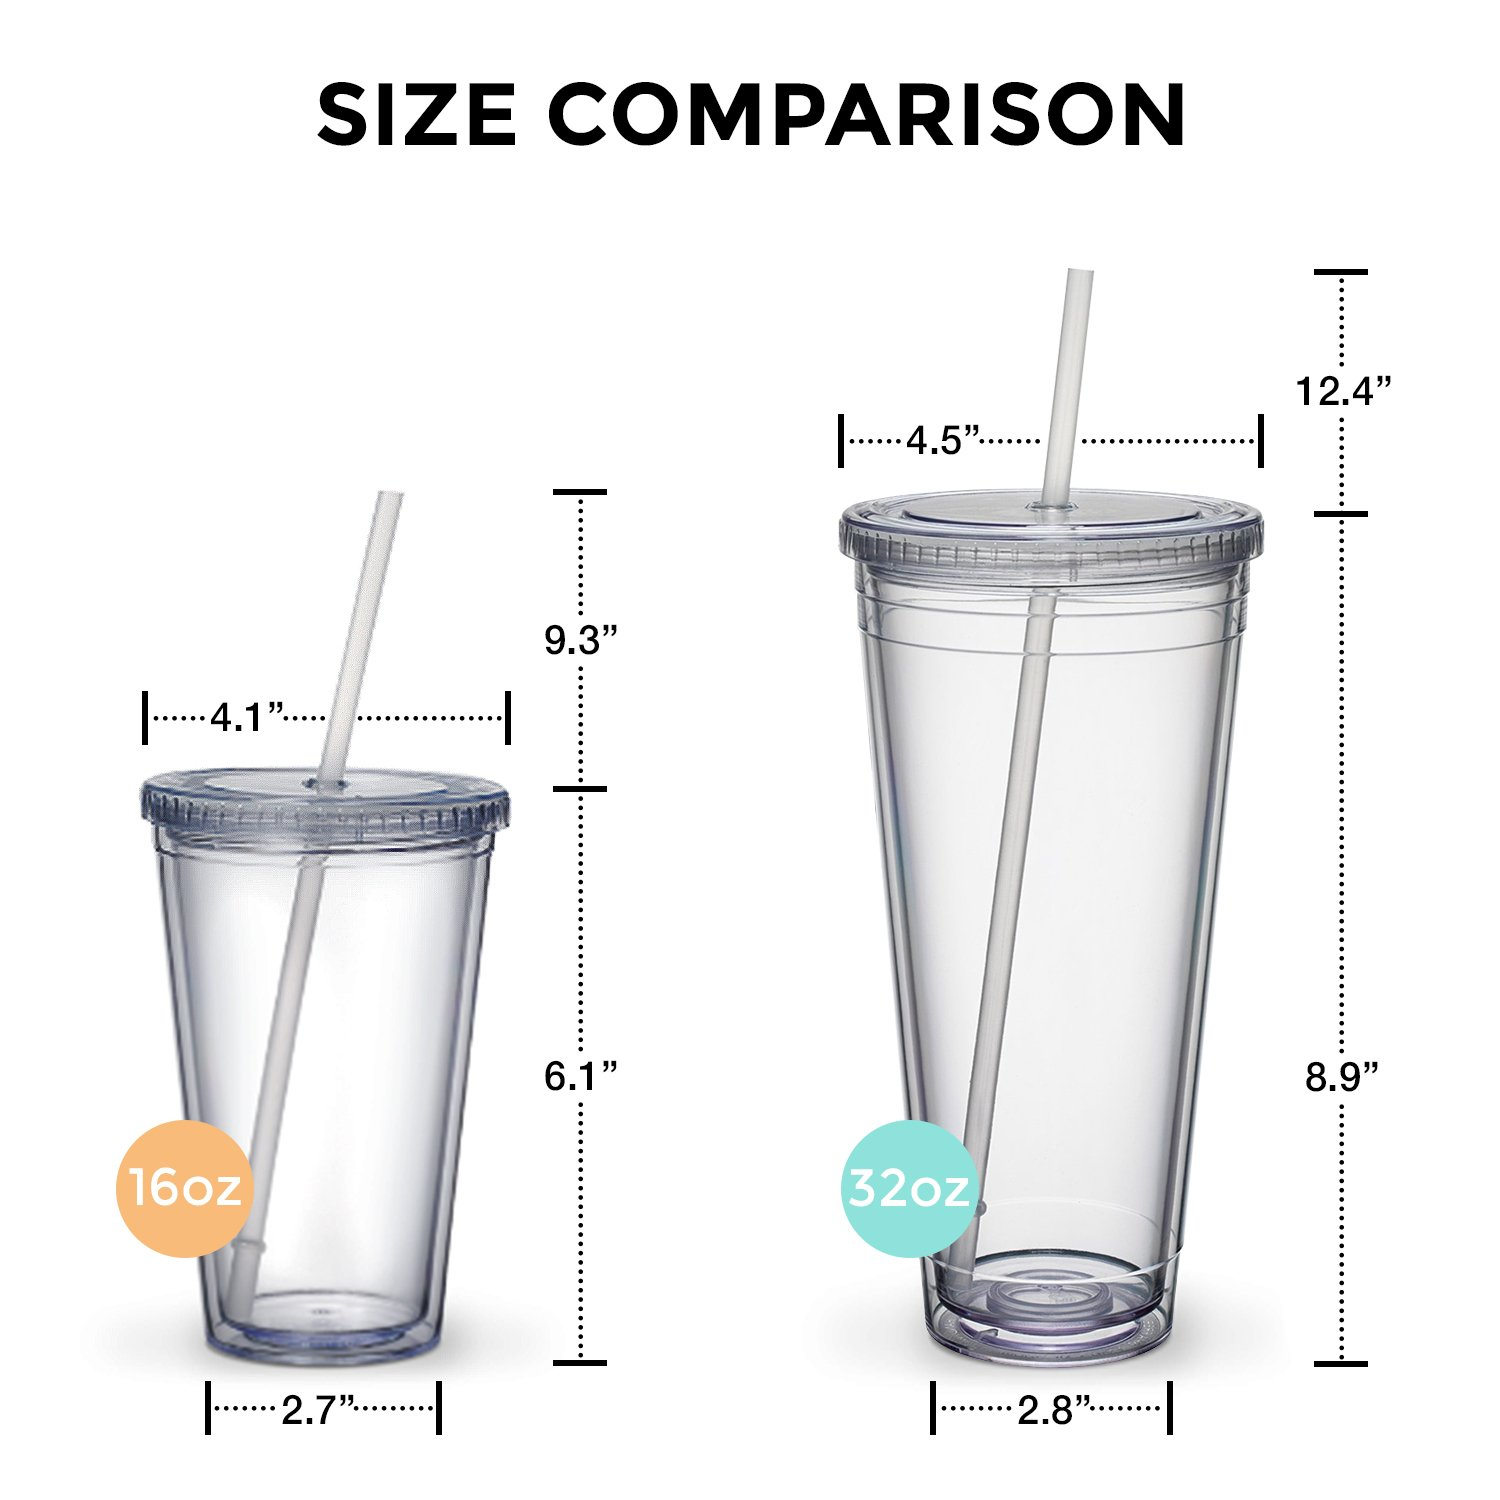 Maars Classic Insulated Tumblers 16 oz. | Double Wall Acrylic | 4 pack by Maars® Drinkware (Image #6)